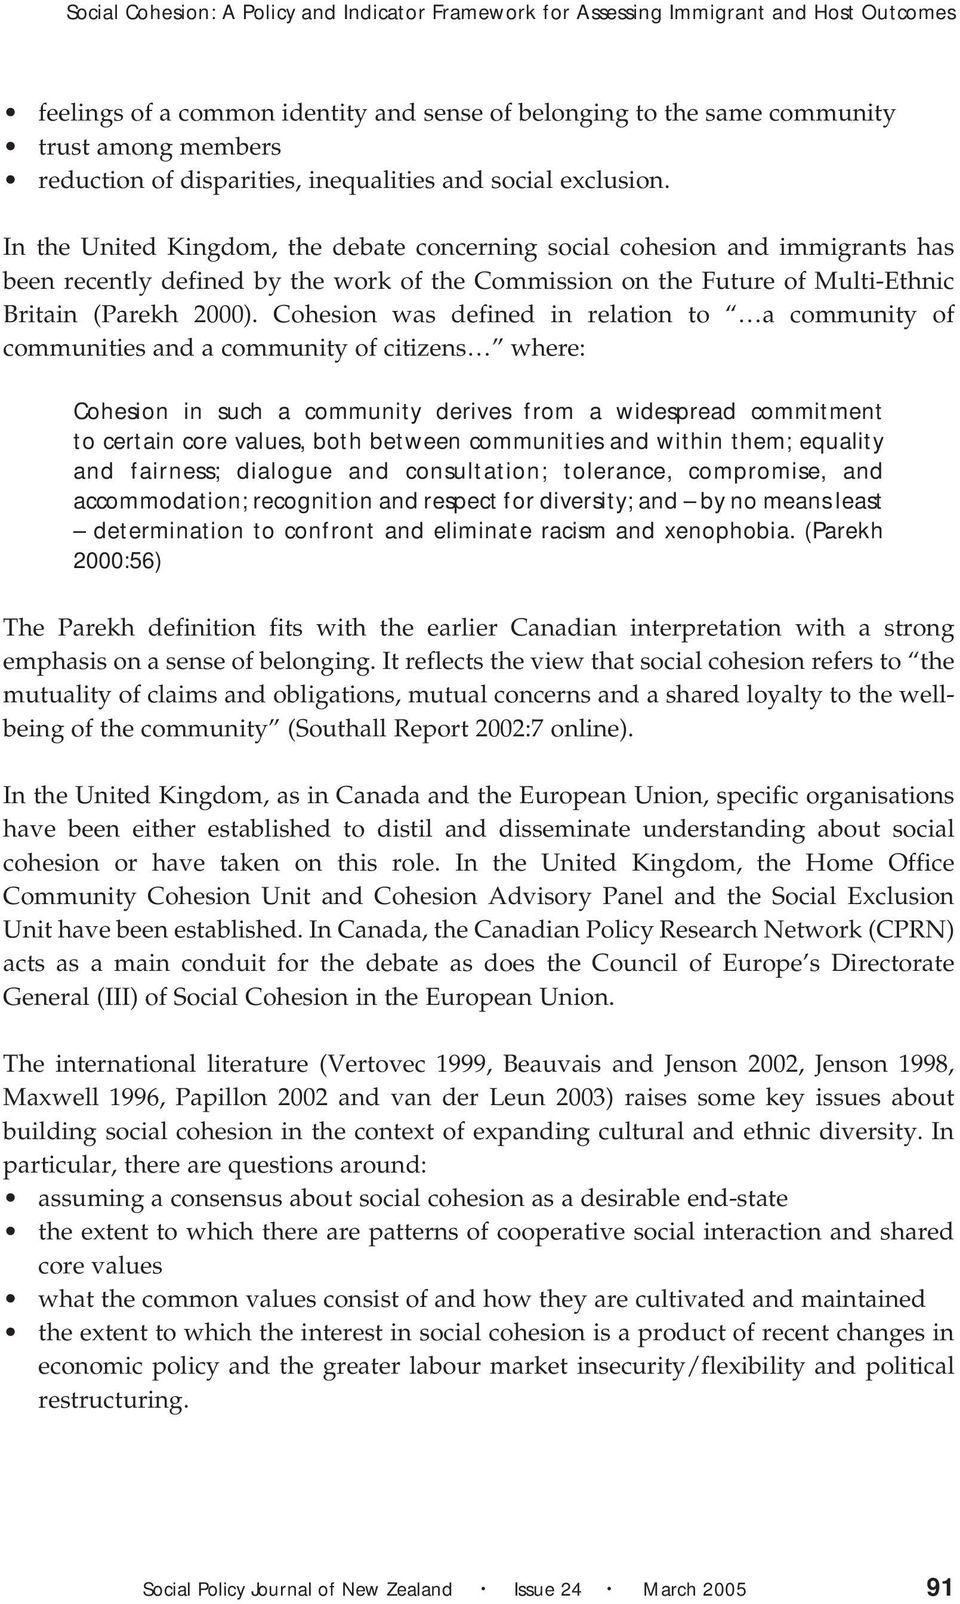 In the United Kingdom, the debate concerning social cohesion and immigrants has been recently defined by the work of the Commission on the Future of Multi-Ethnic Britain (Parekh 2000).